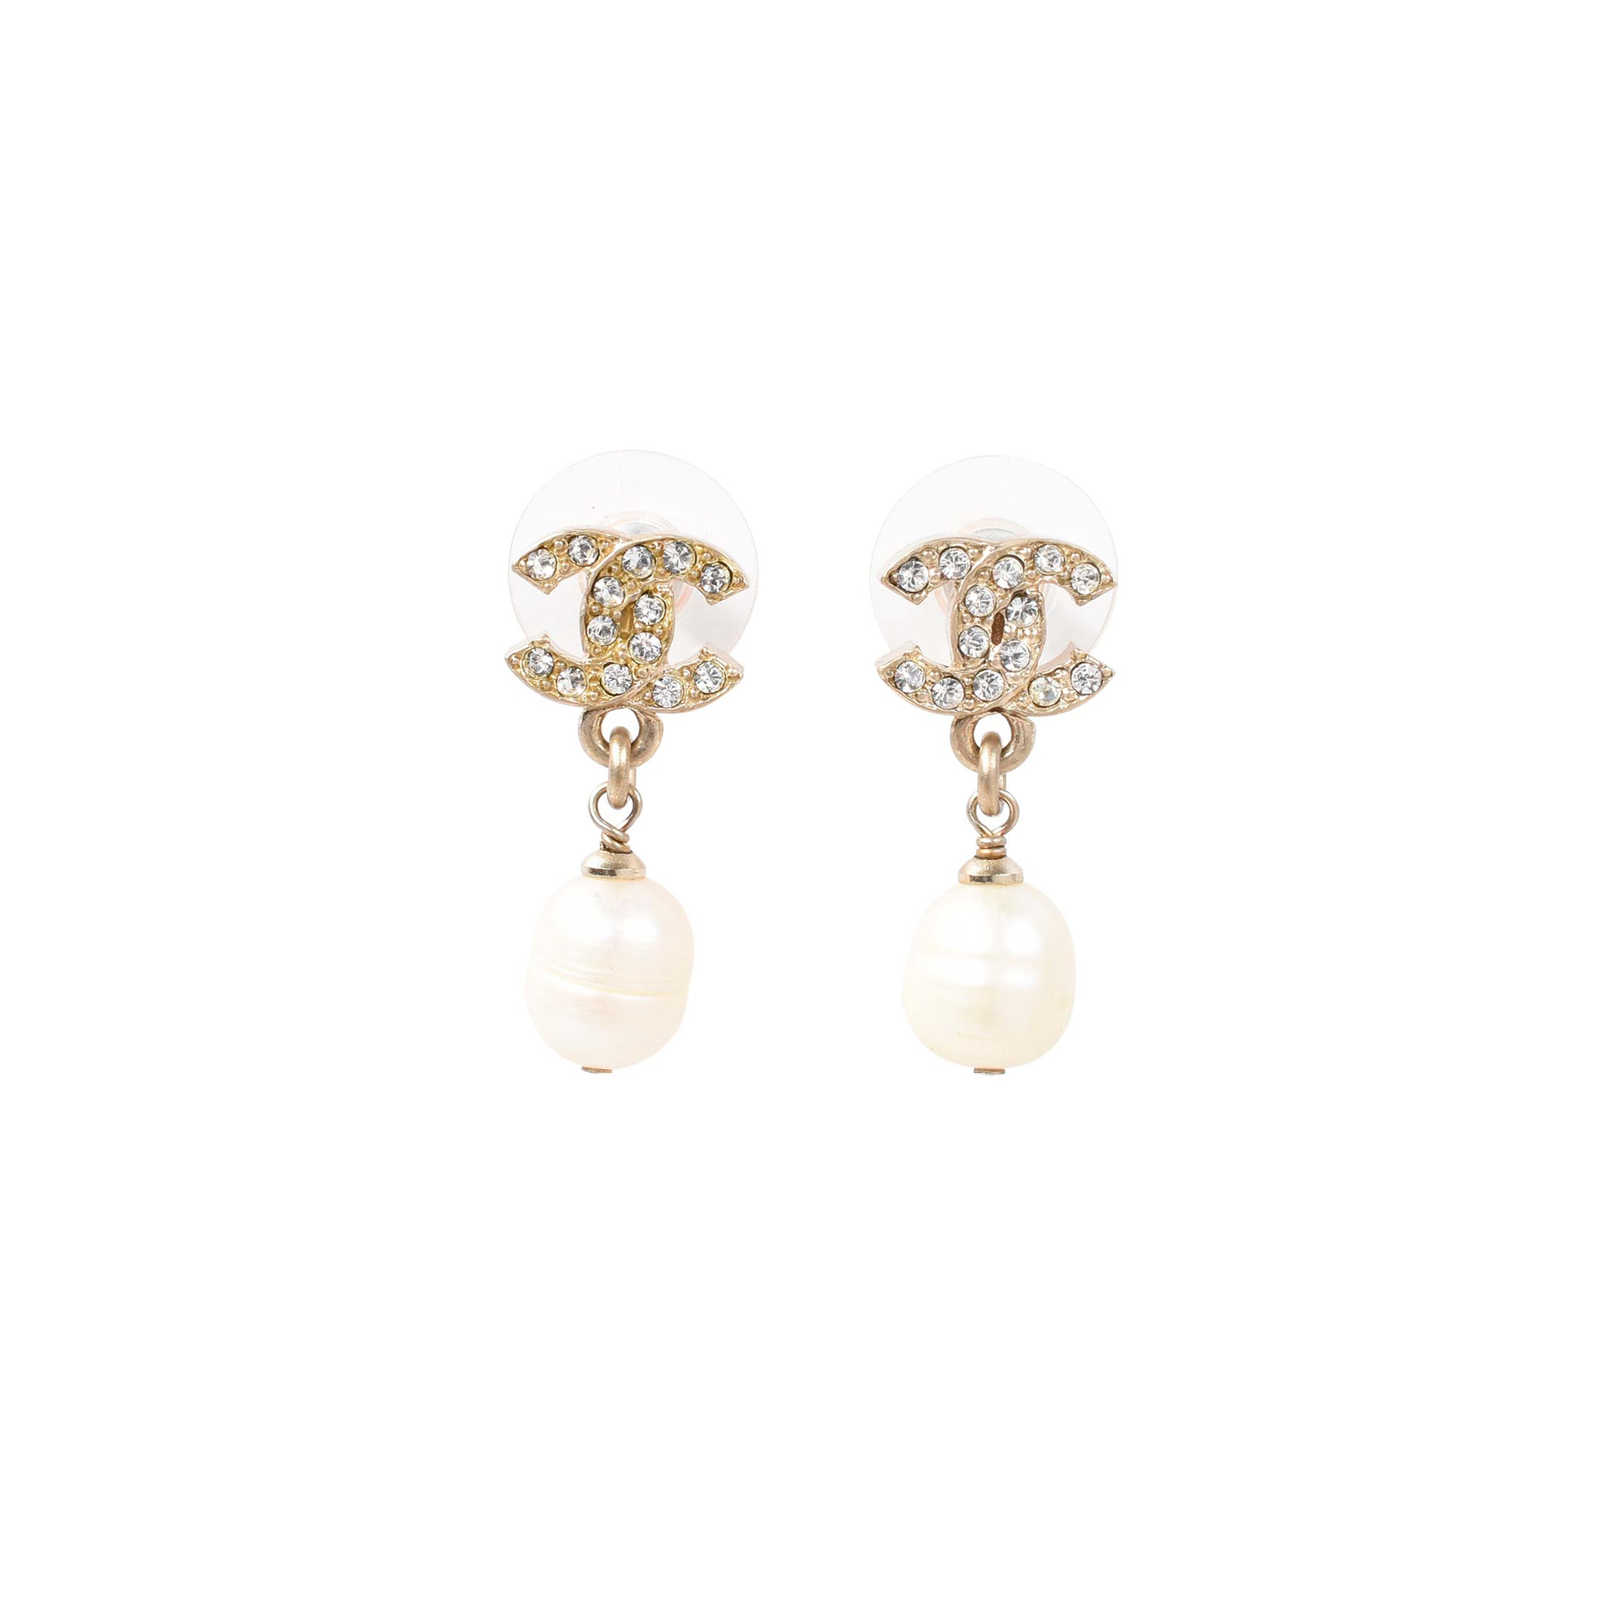 Authentic Pre Owned Chanel Cc Drop Pearl Earrings Pss 233 00032